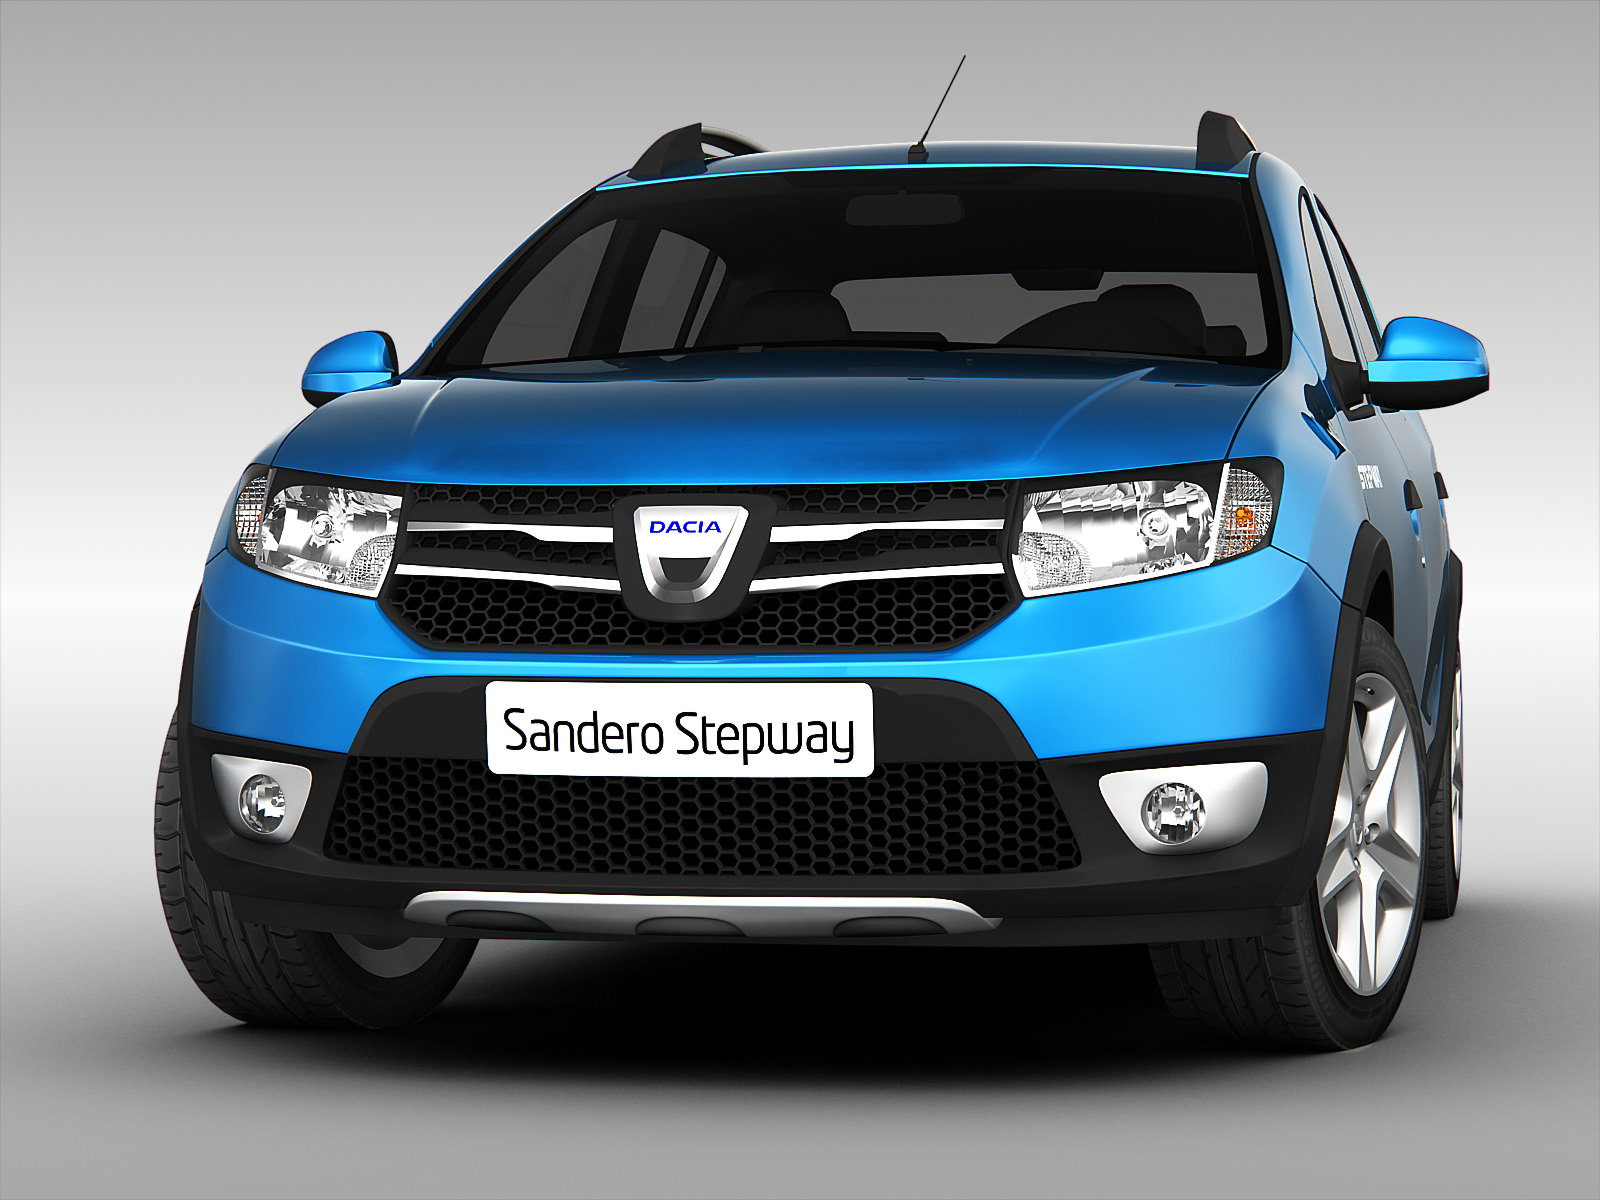 2013 dacia sandero stepway car photos catalog 2018. Black Bedroom Furniture Sets. Home Design Ideas